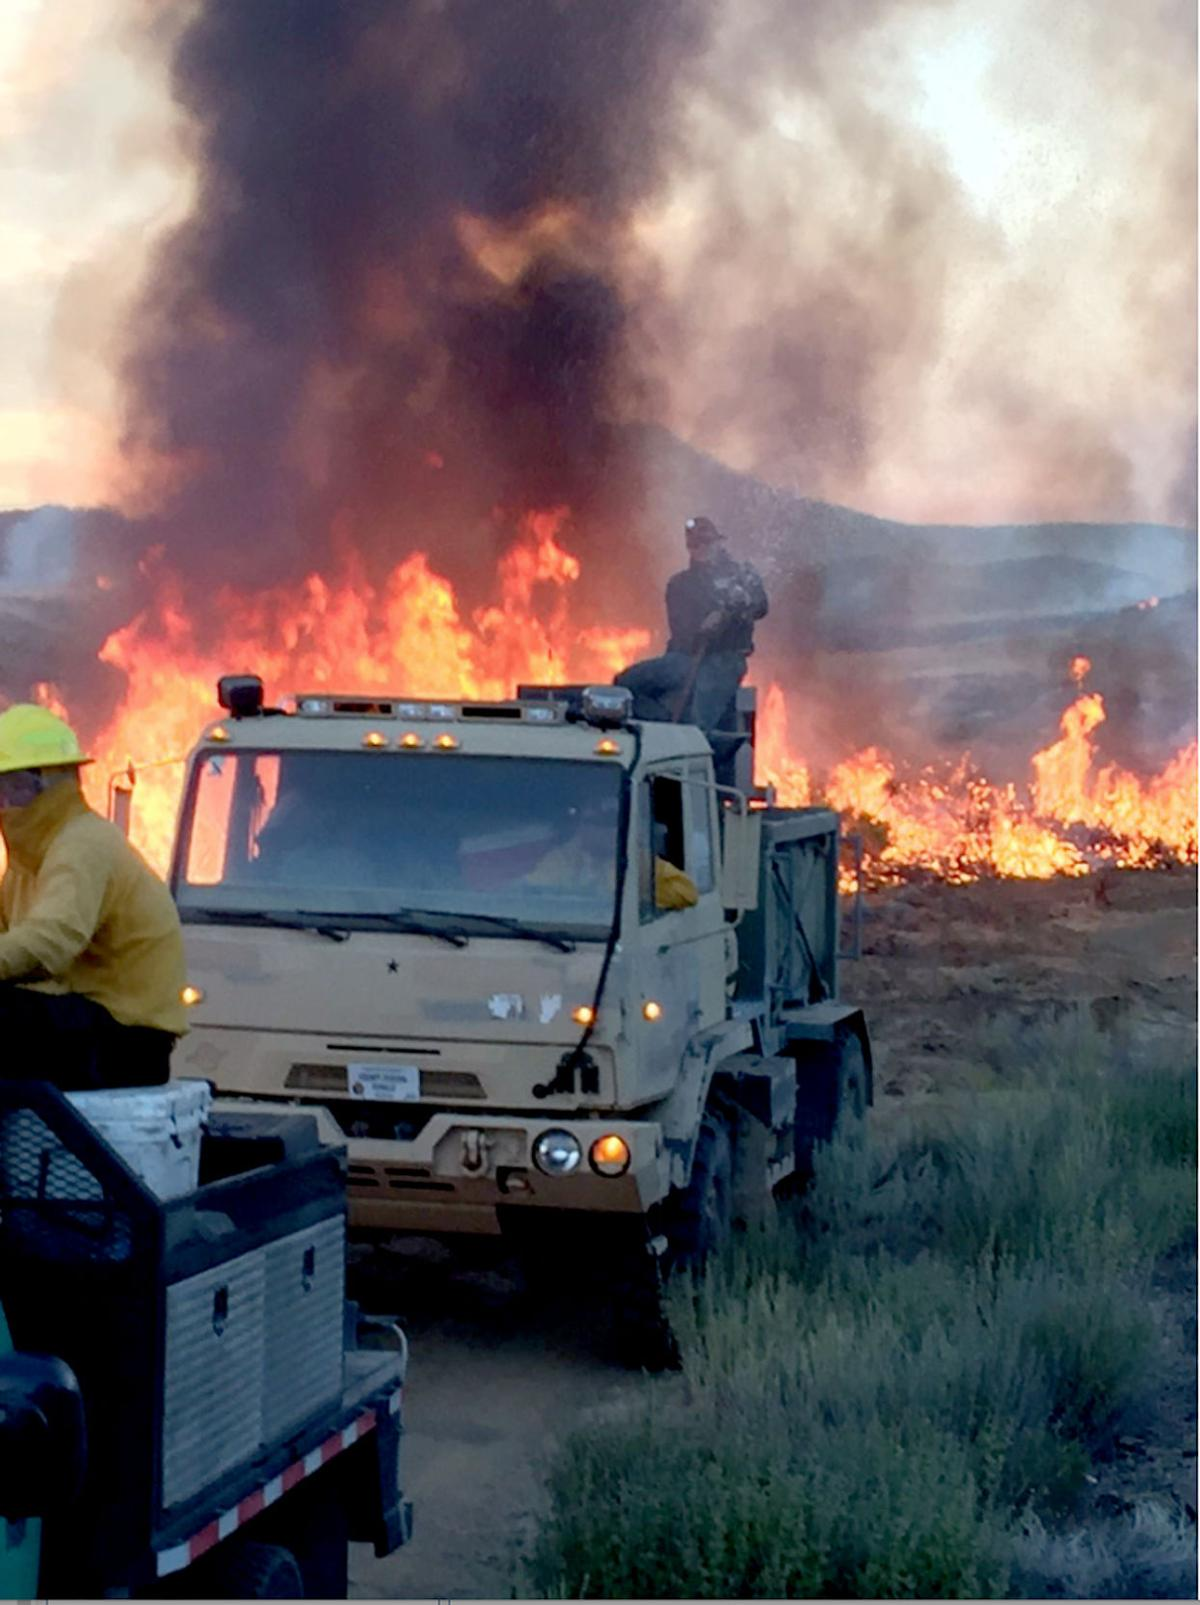 Private landowners fight rangeland fires